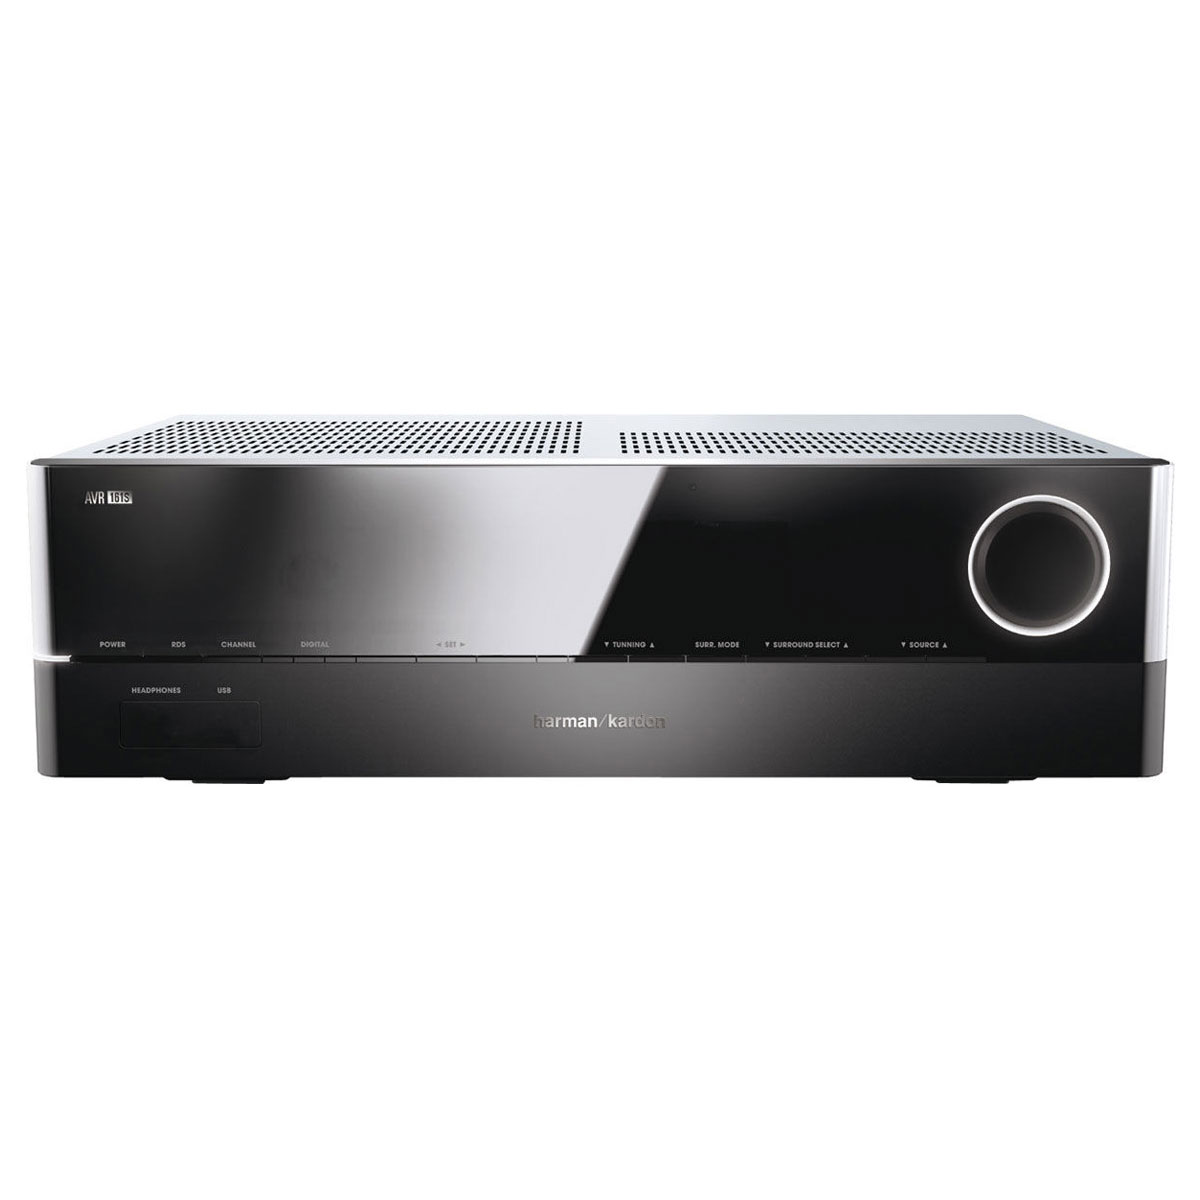 Ampli home cinéma Harman Kardon AVR 161S Ampli-tuner Home Cinema 3D Ready 5.1 DLNA avec HDMI 2.0 4K, Bluetooth, Spotify Connect